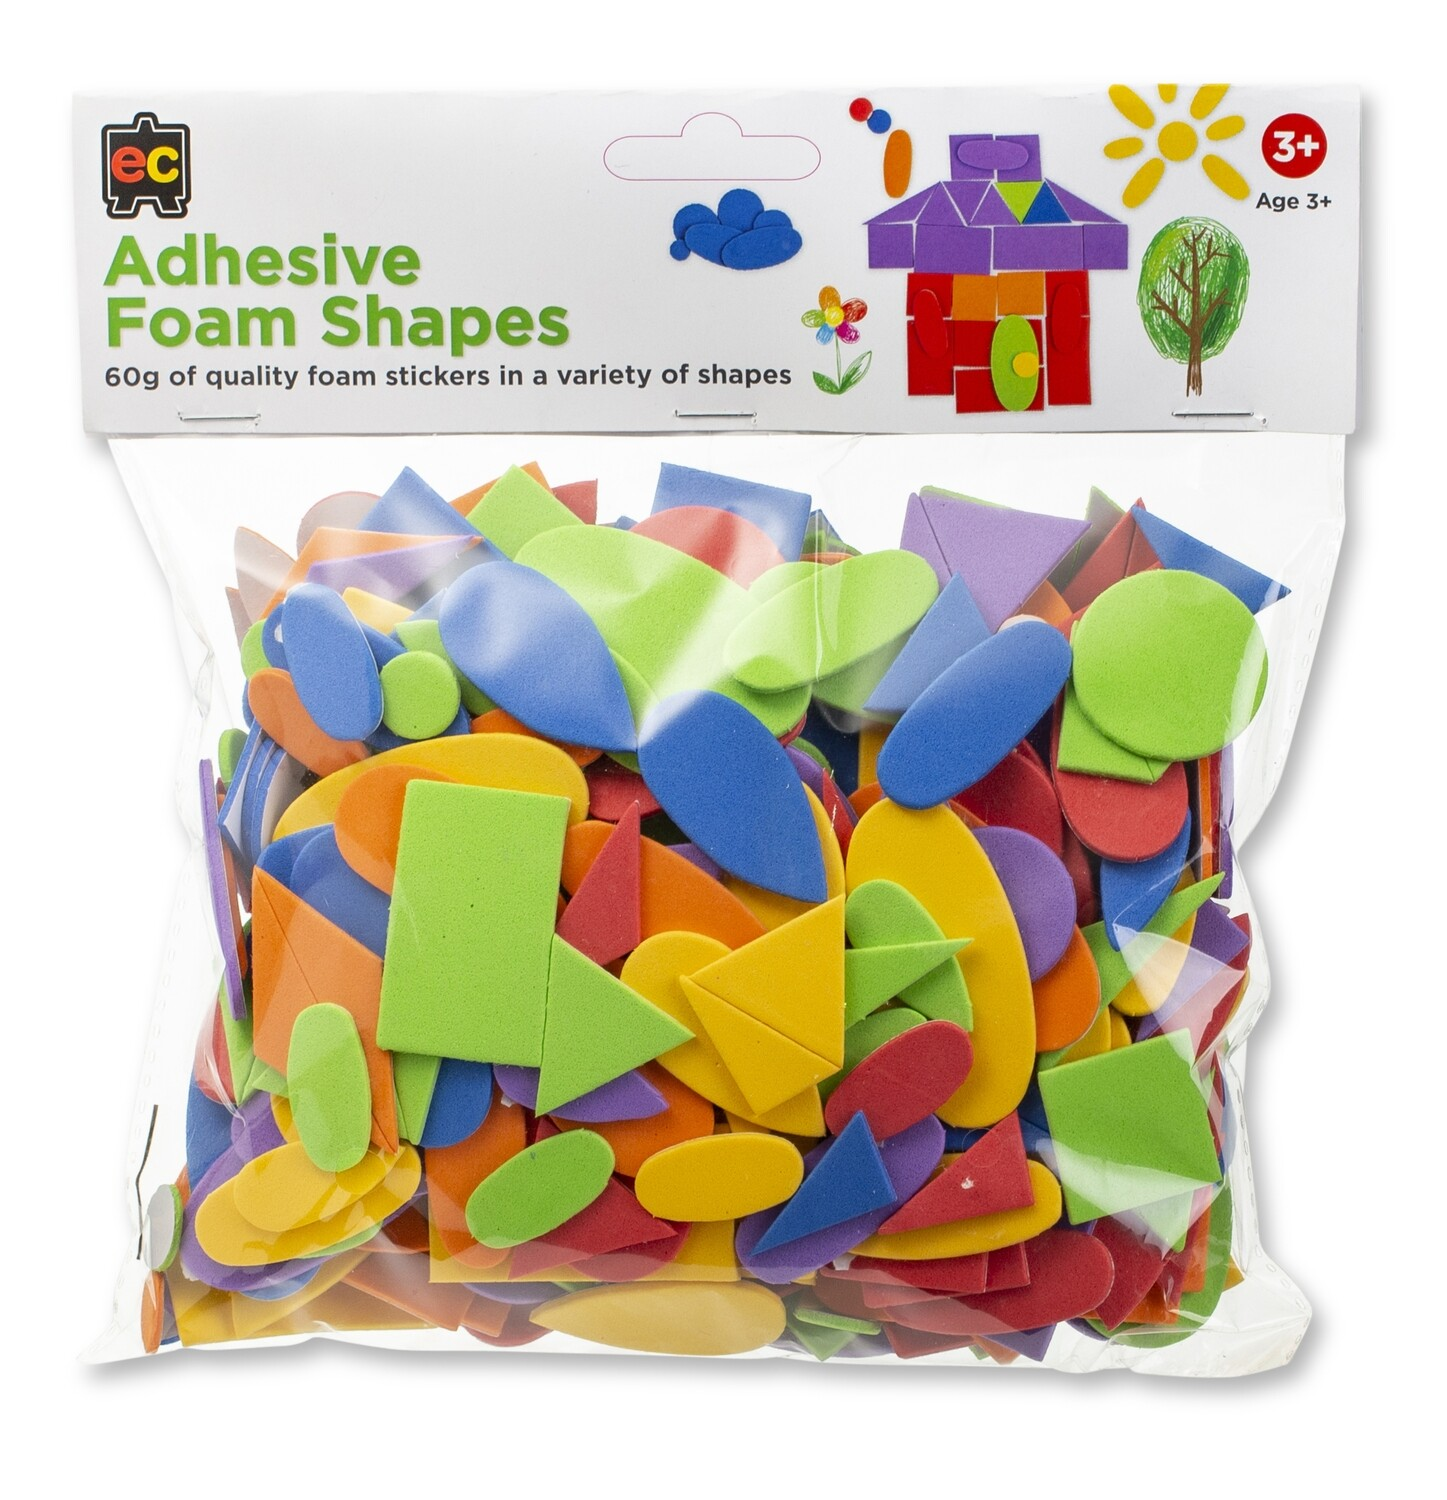 Adhesive Foam Shapes 60g